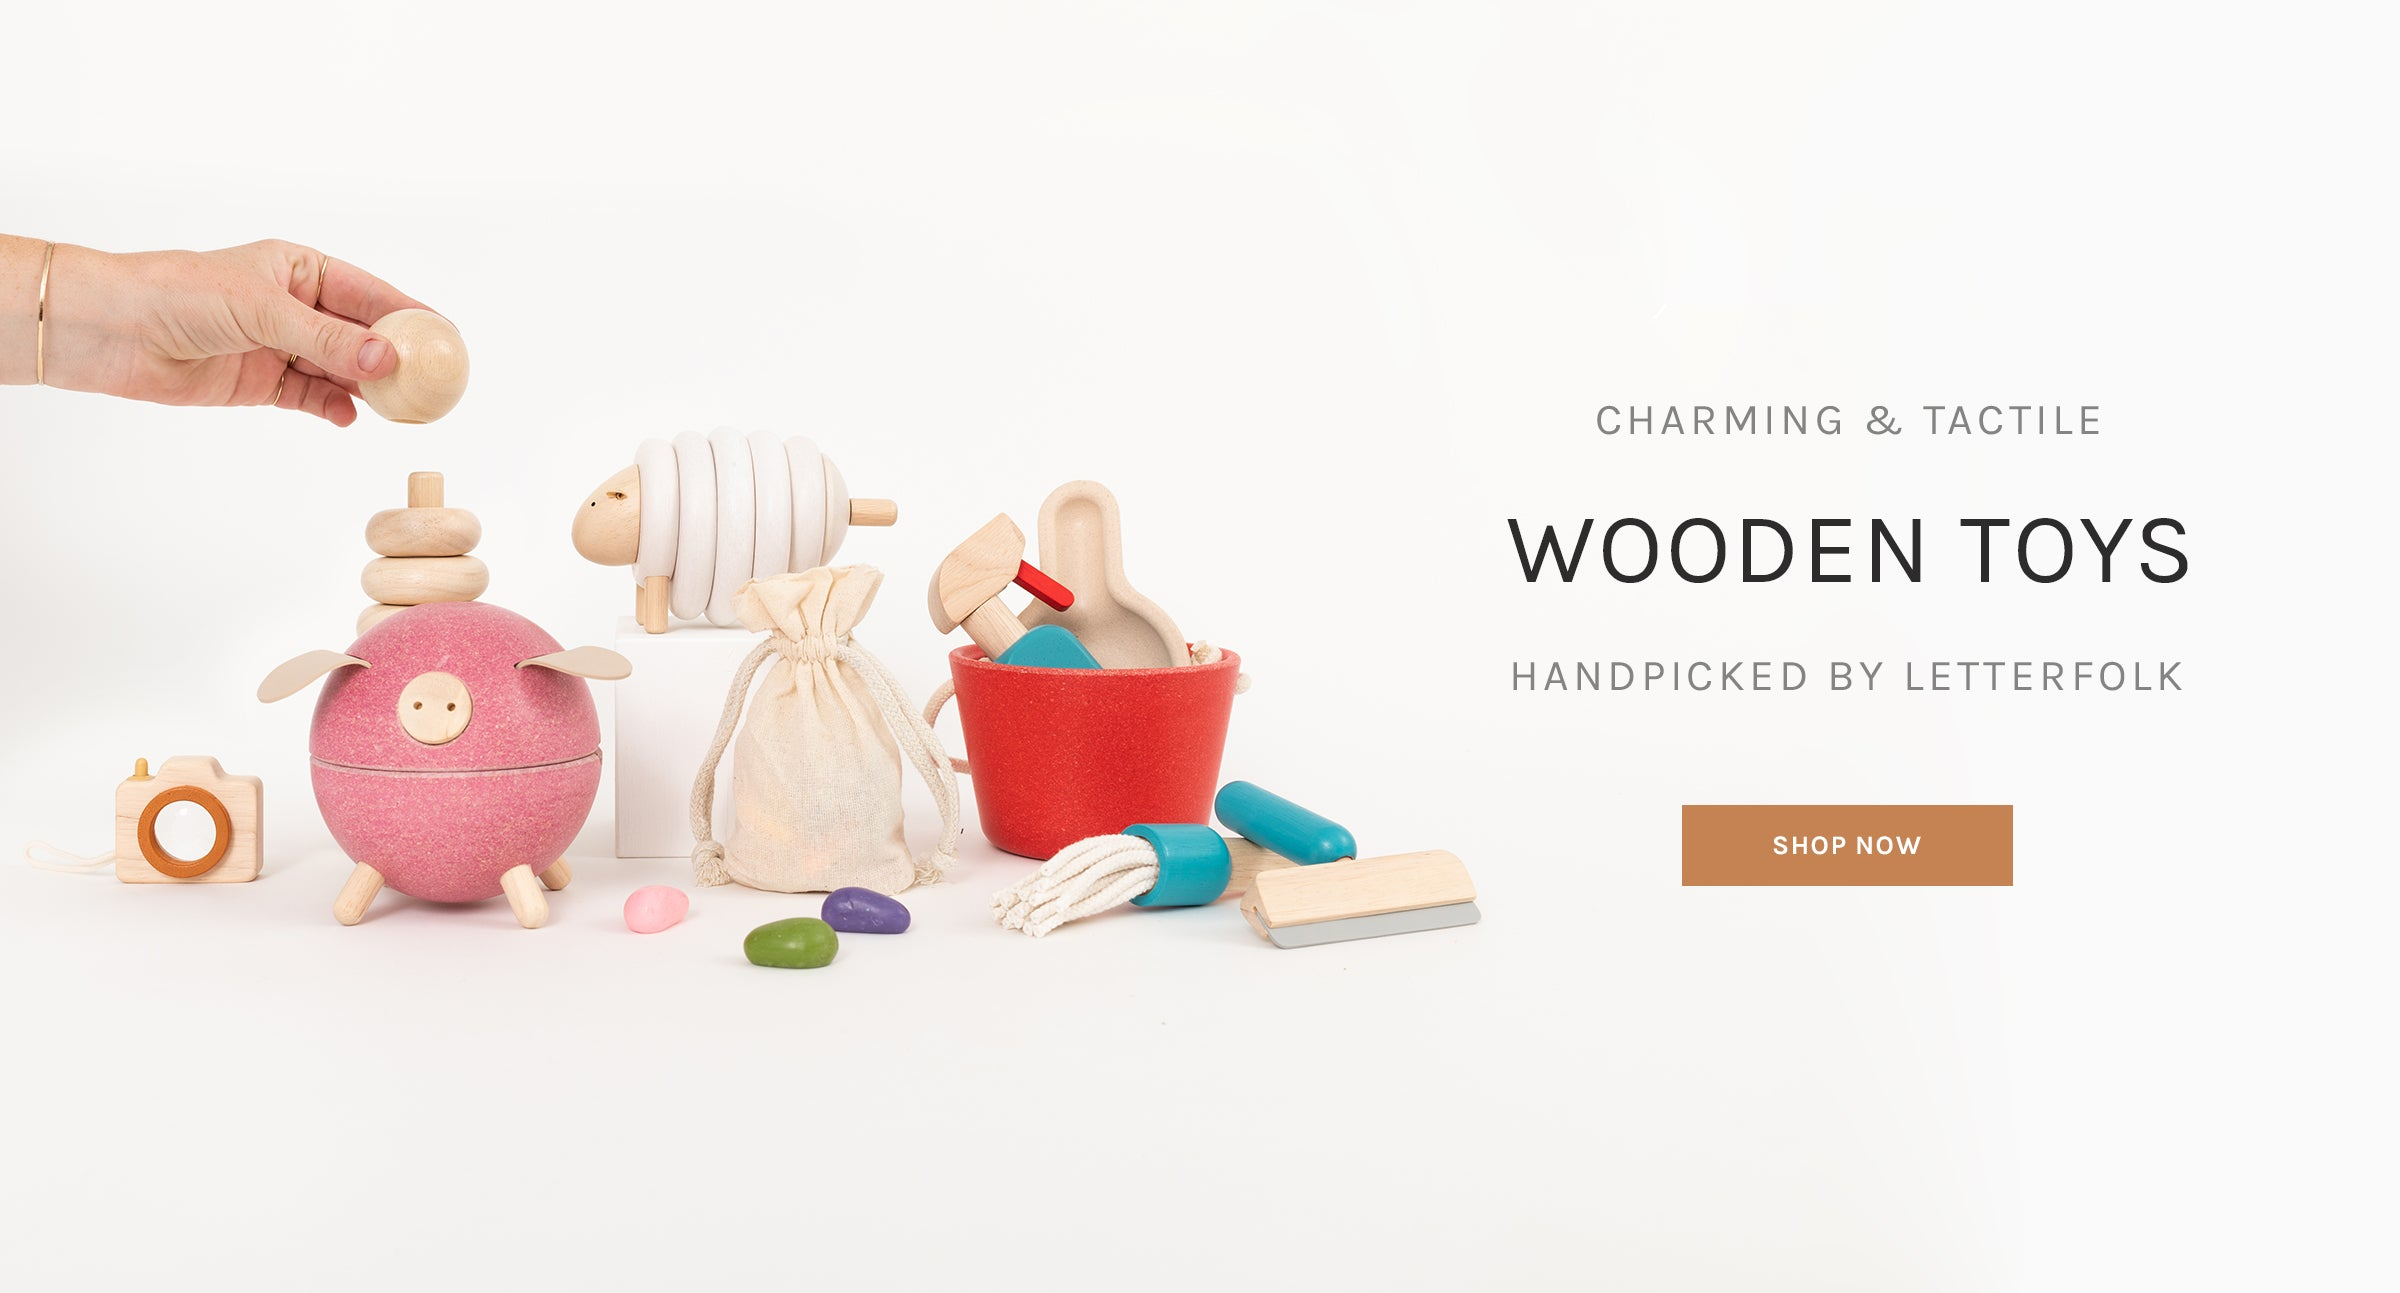 Charming & Tactile Wooden Toys Handpicked by Letterfolk